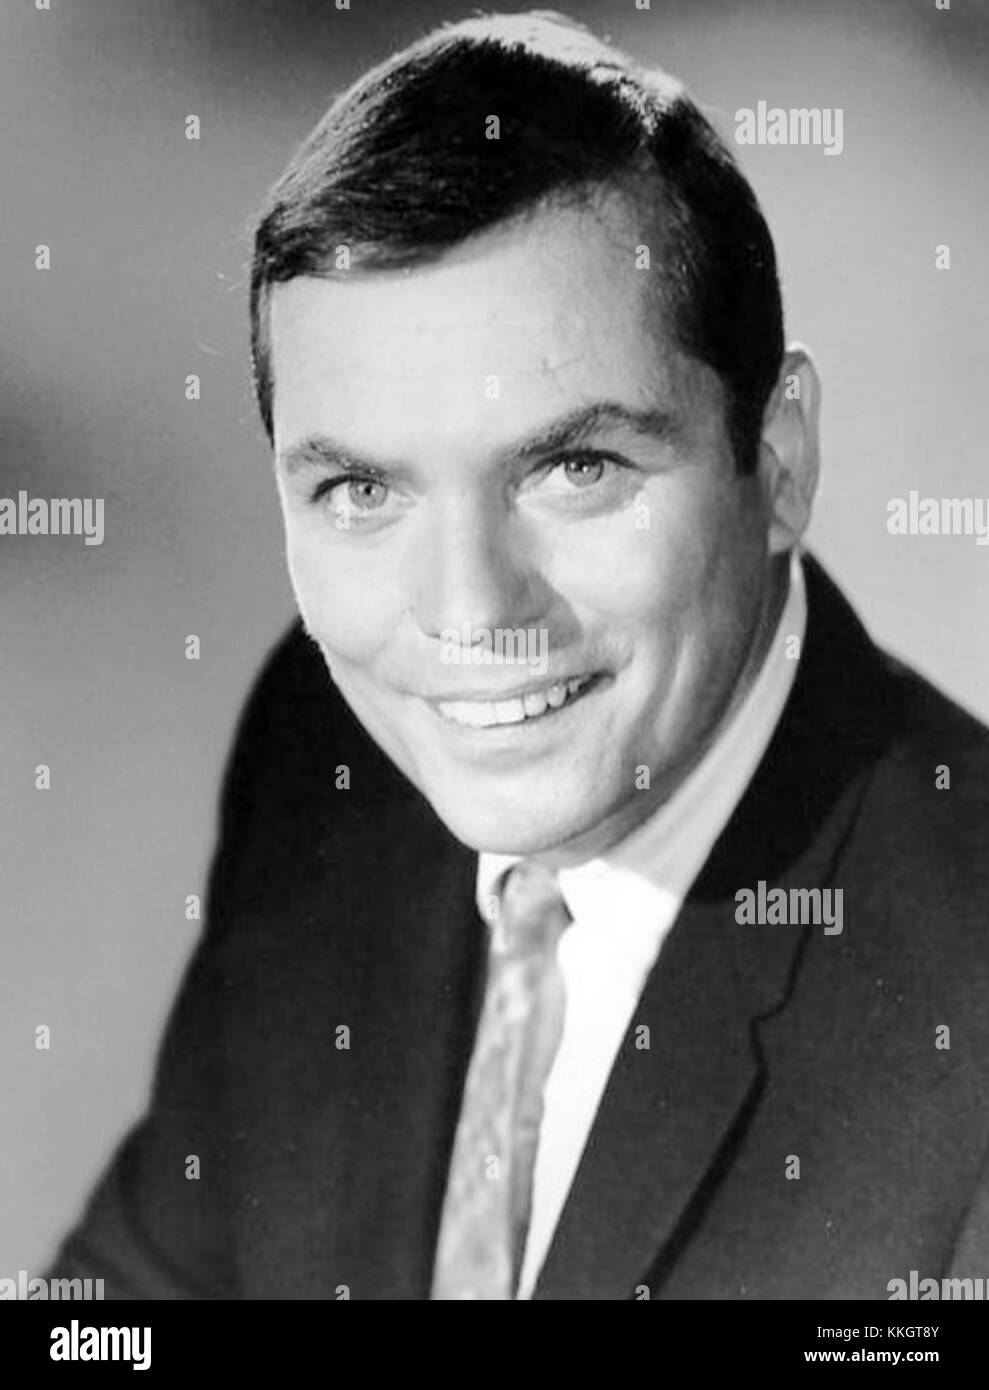 Peter Marshall game show host - Stock Image